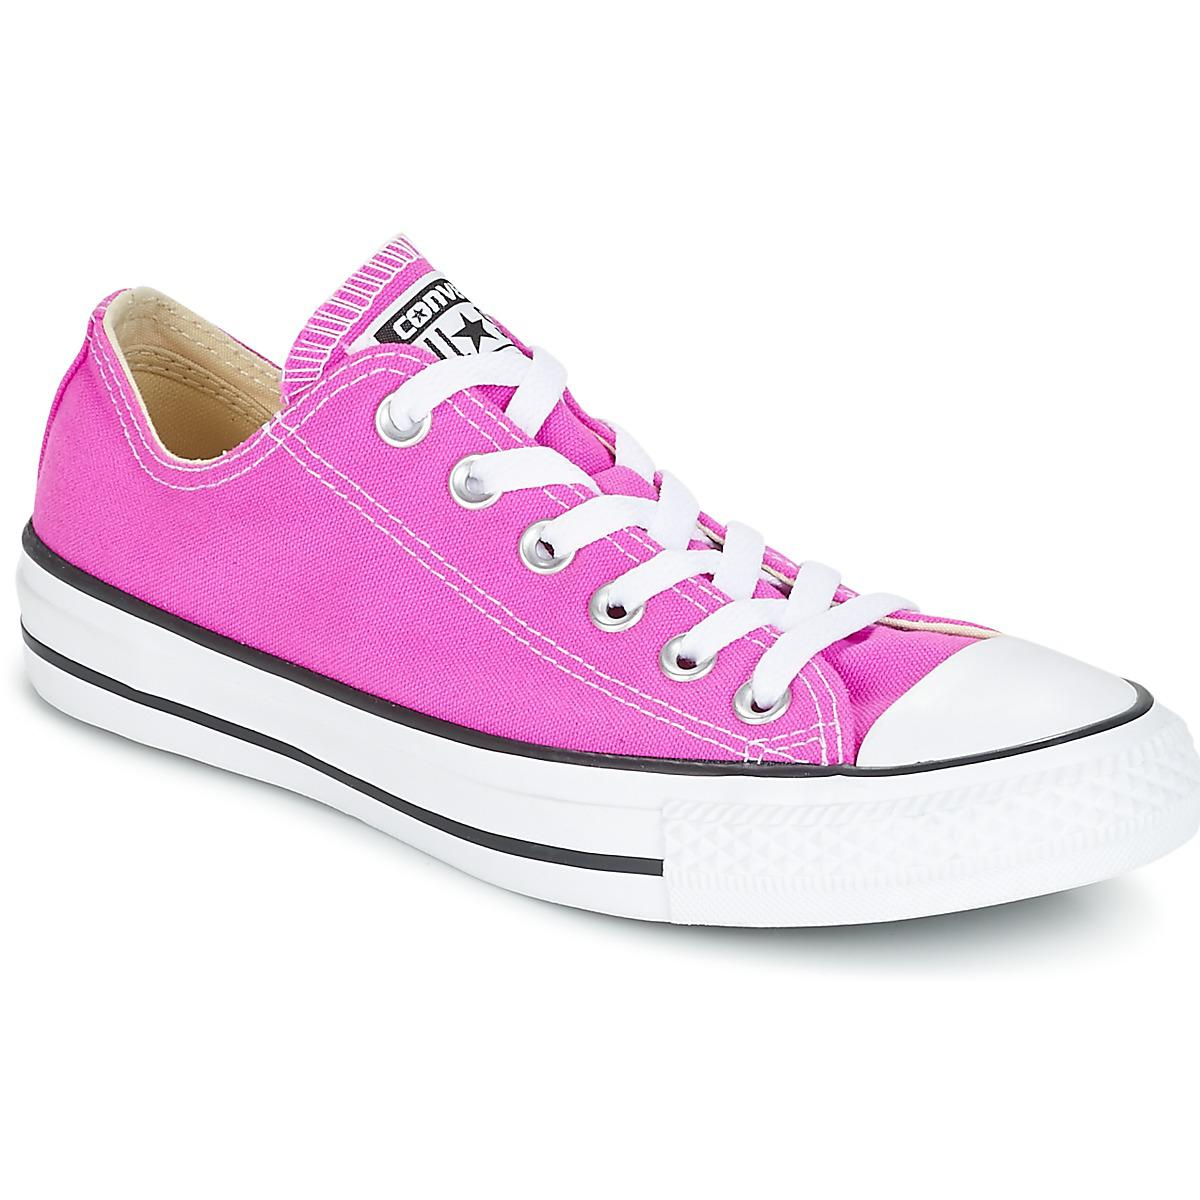 56283f12519bc2 Converse Chuck Taylor All Star Ox Seasonal Colors Women s Shoes ...